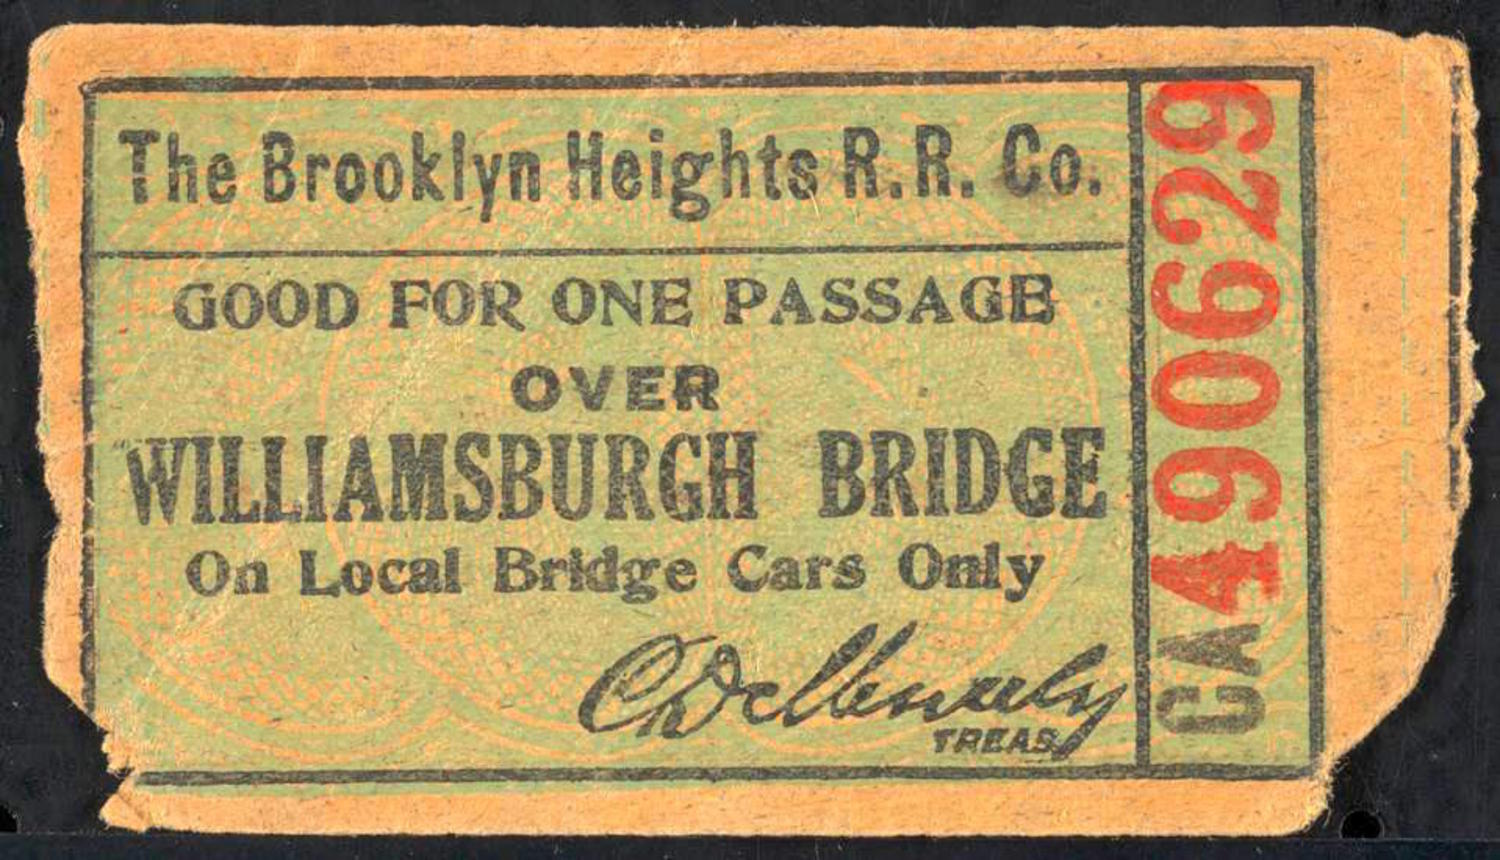 Good for one passage over Williamsburgh Bridge on local bridge cars only. Three rides 5 cents.